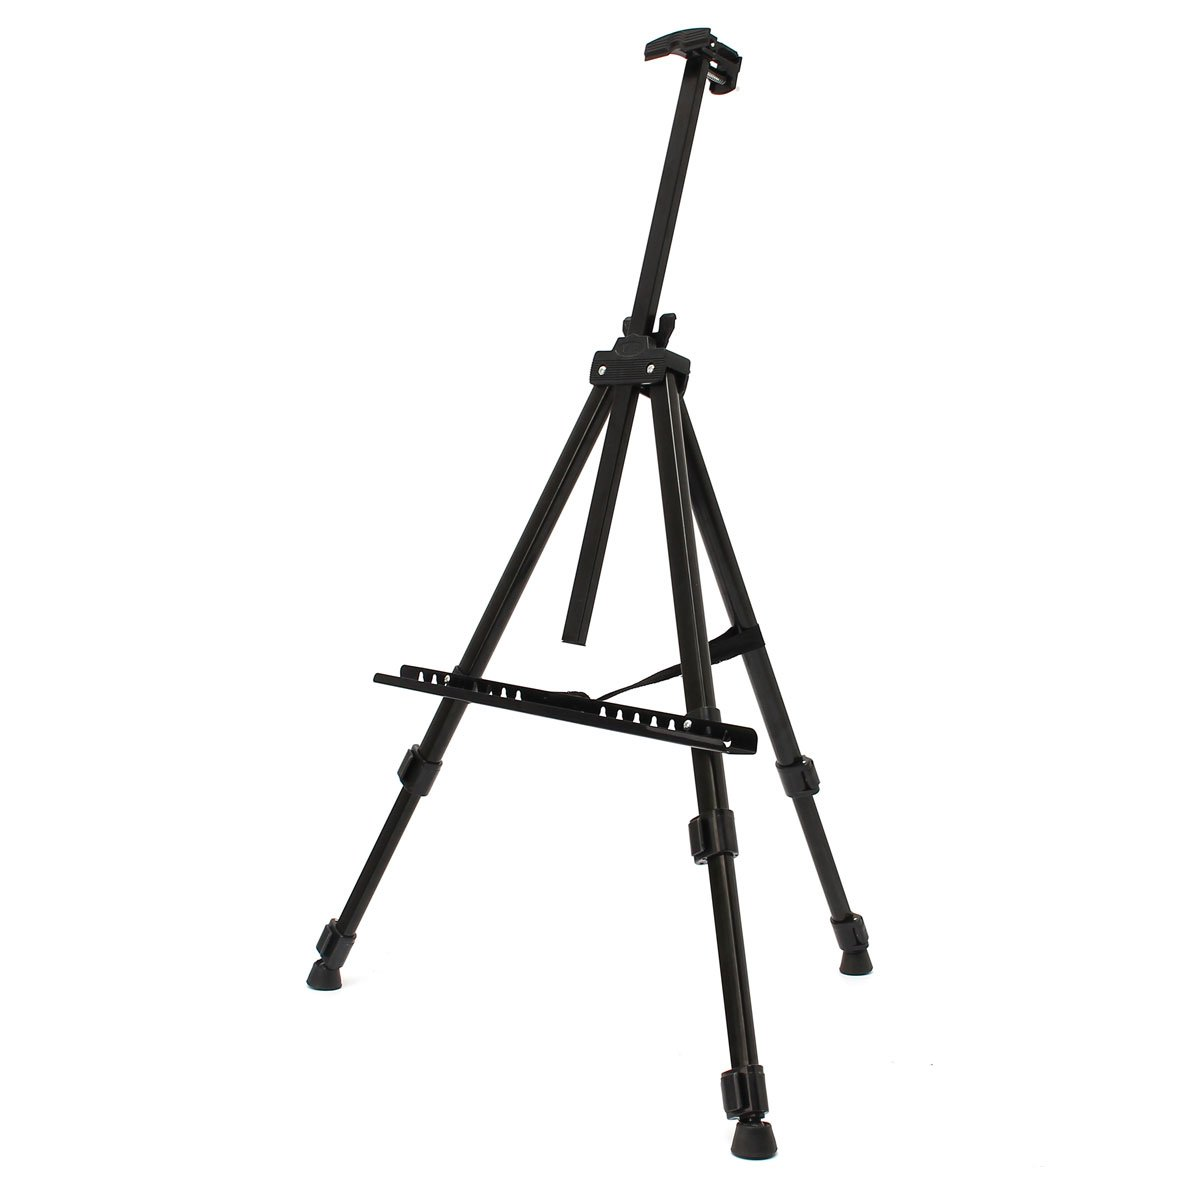 artist-quality-metal-folding-painting-easel-frame-adjustable-tripod-display-shelf-and-carry-bag-painting-supplies-3